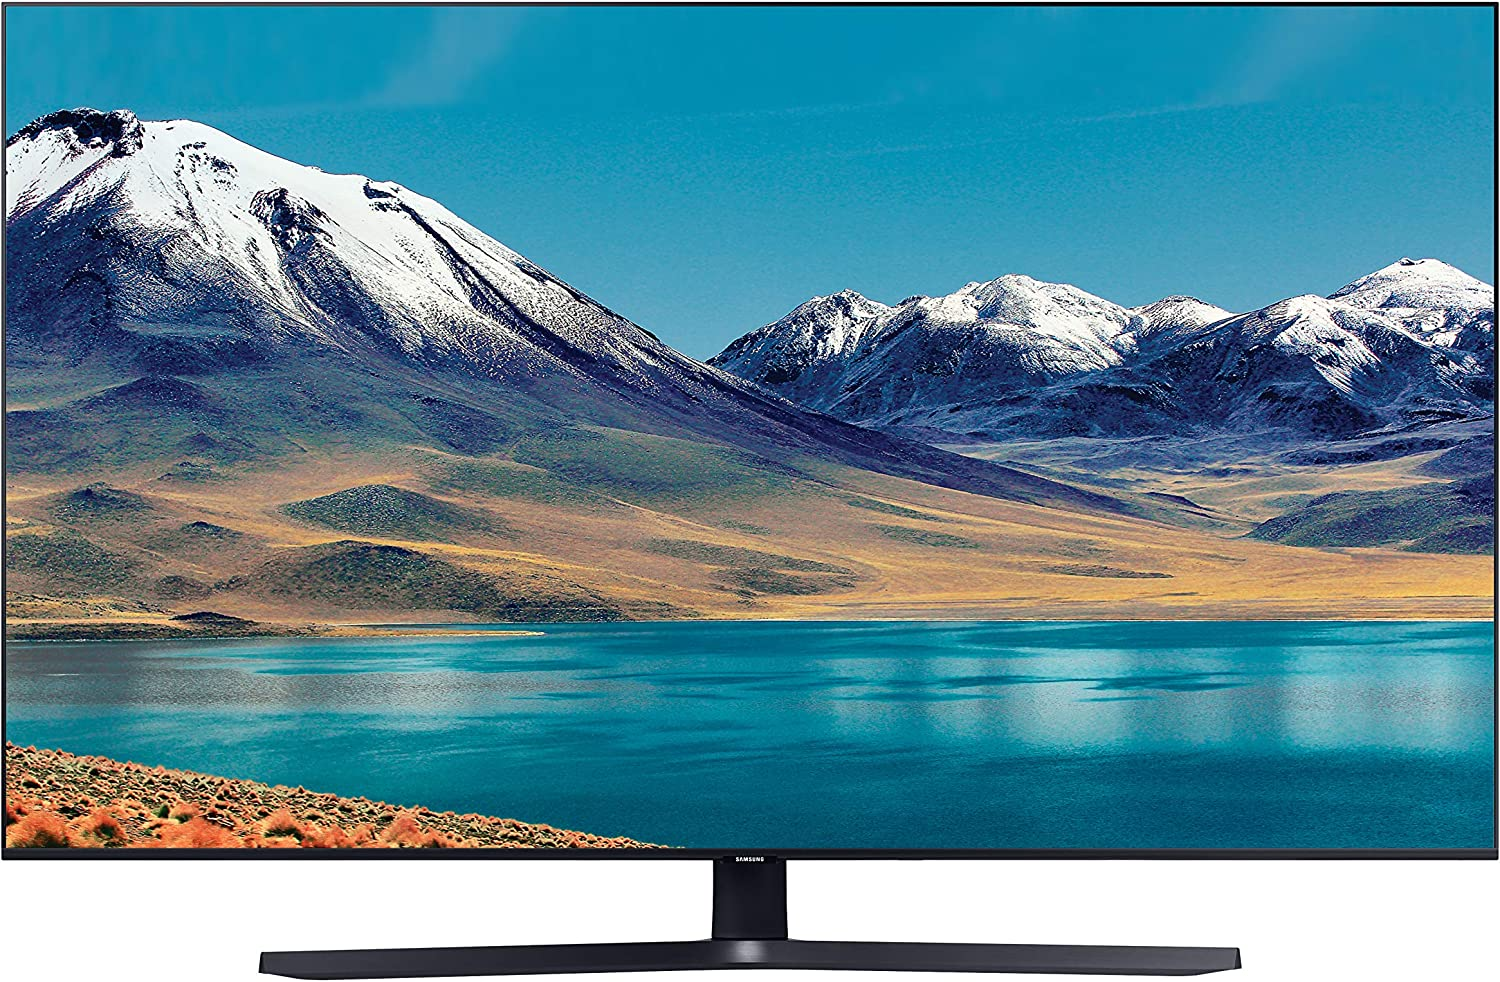 Samsung TV Smart TV Serie TU8500: Amazon.es: Electrónica